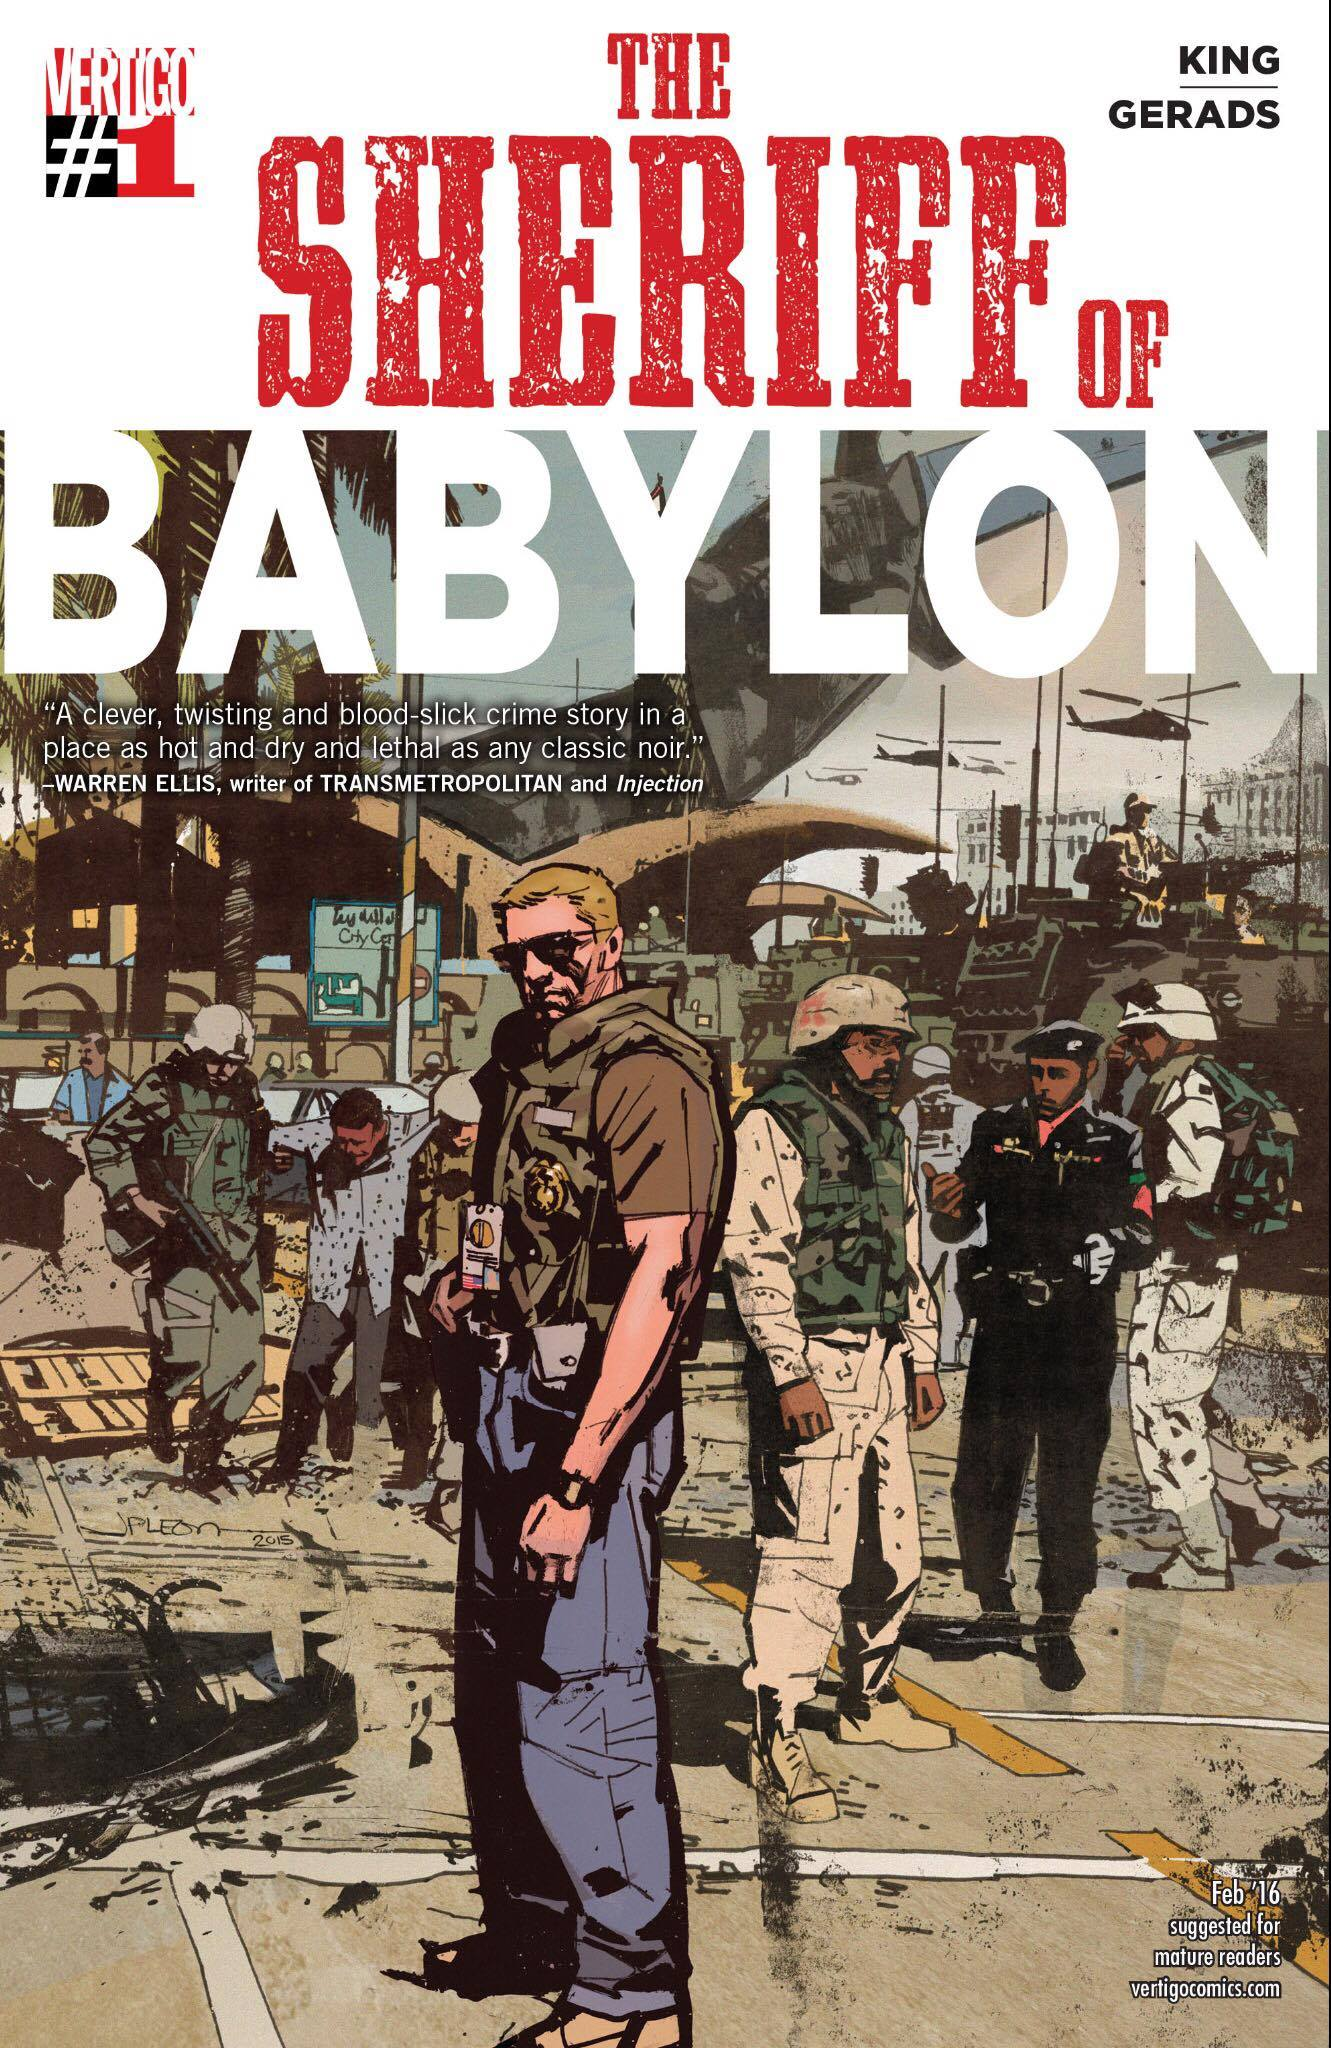 WHY AREN'T YOU READING SHERIFF OF BABYLON? Review